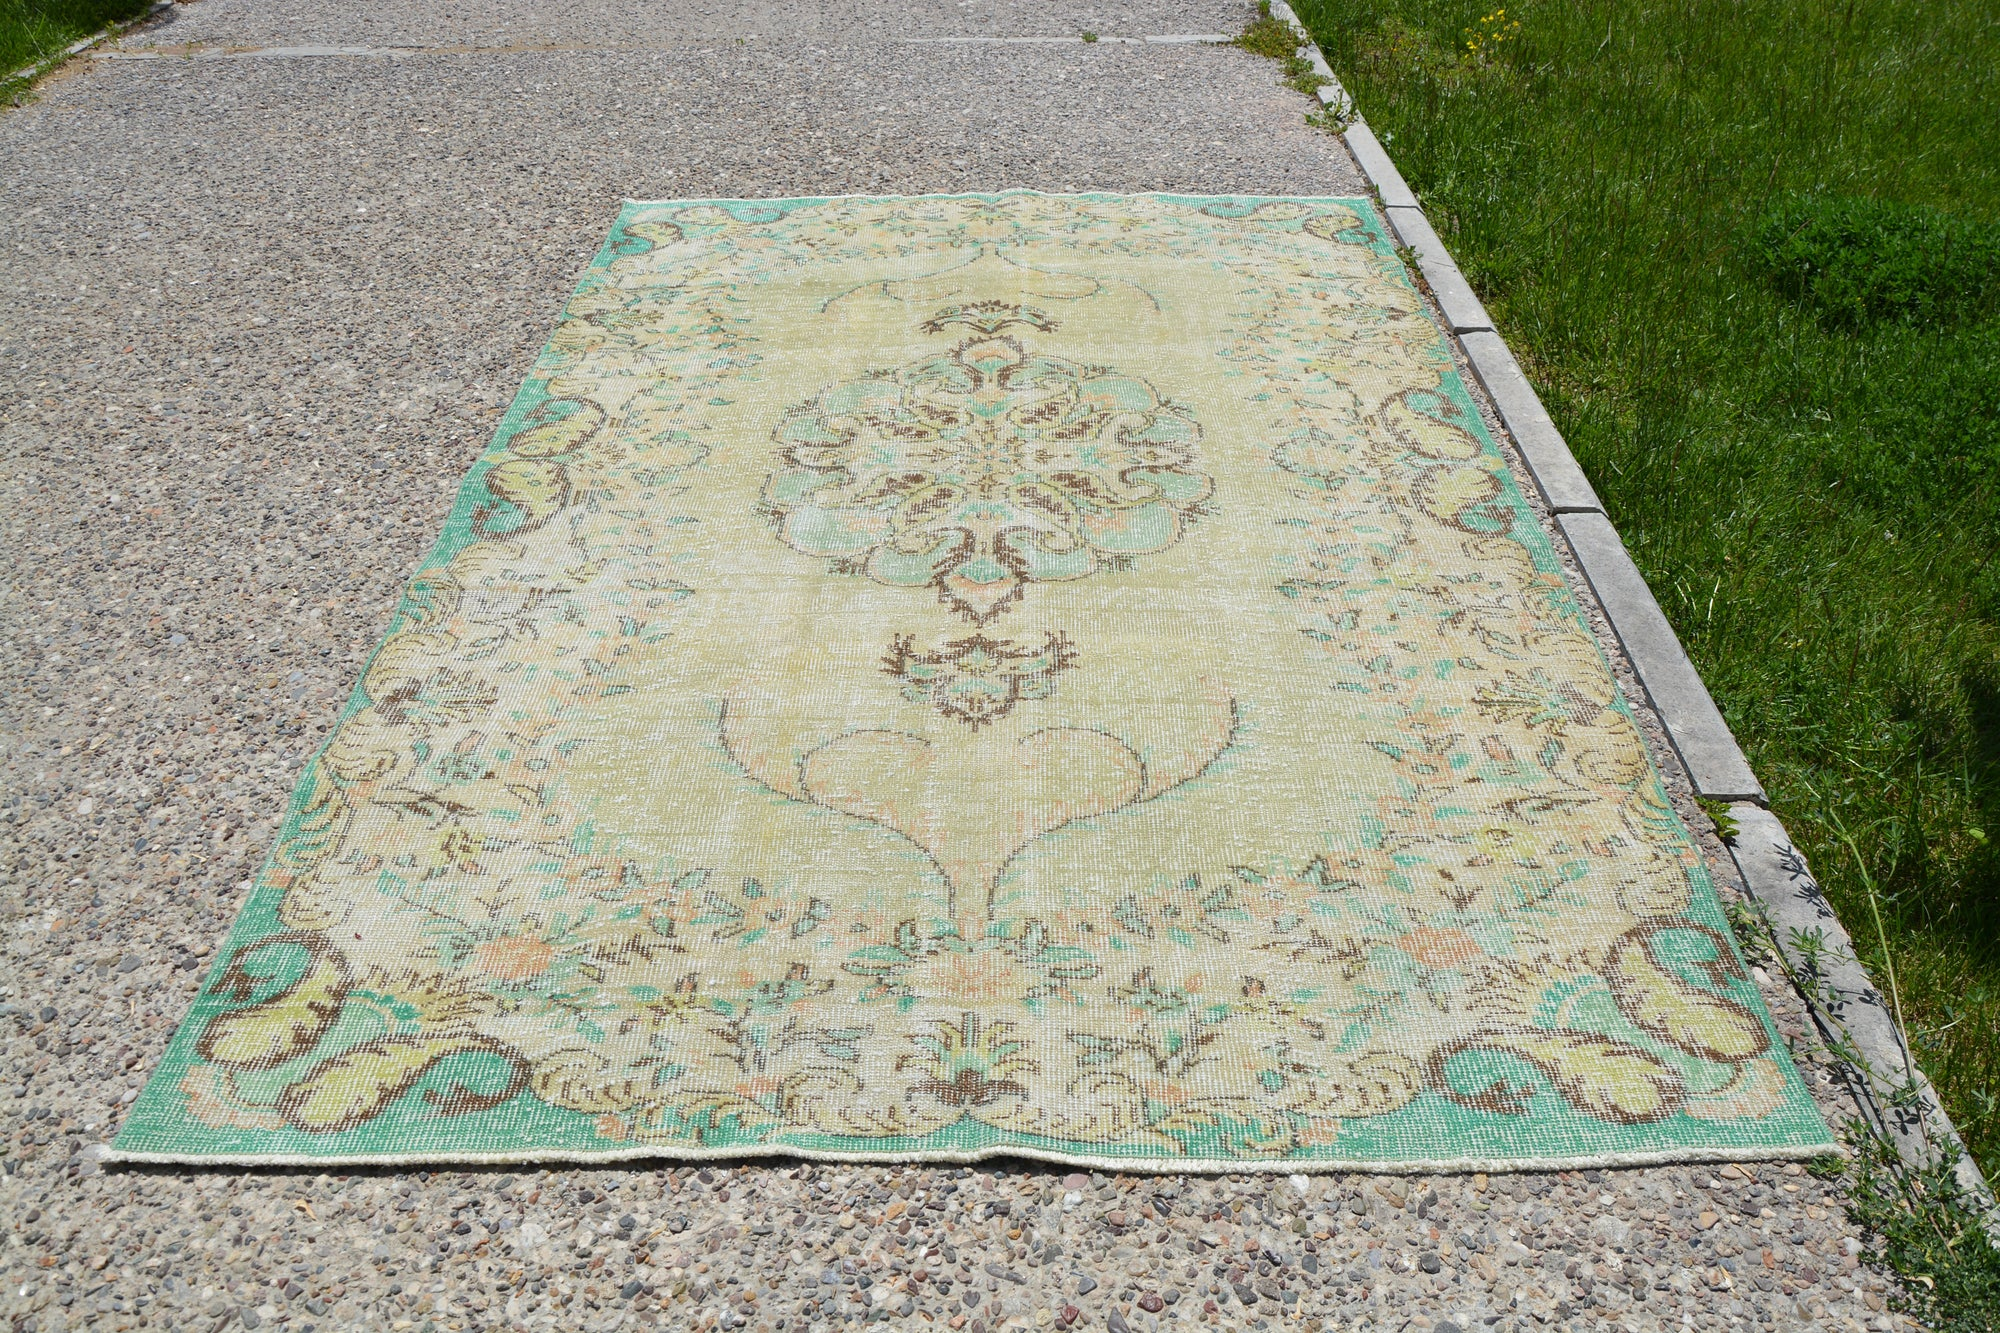 Turkish Vintage Antique Oushak Rug, Green Moroccan Oriental Berber Rug, Yellow Kelim  Art Deco Rug, 5.9 x 9.1 Feet LQ098